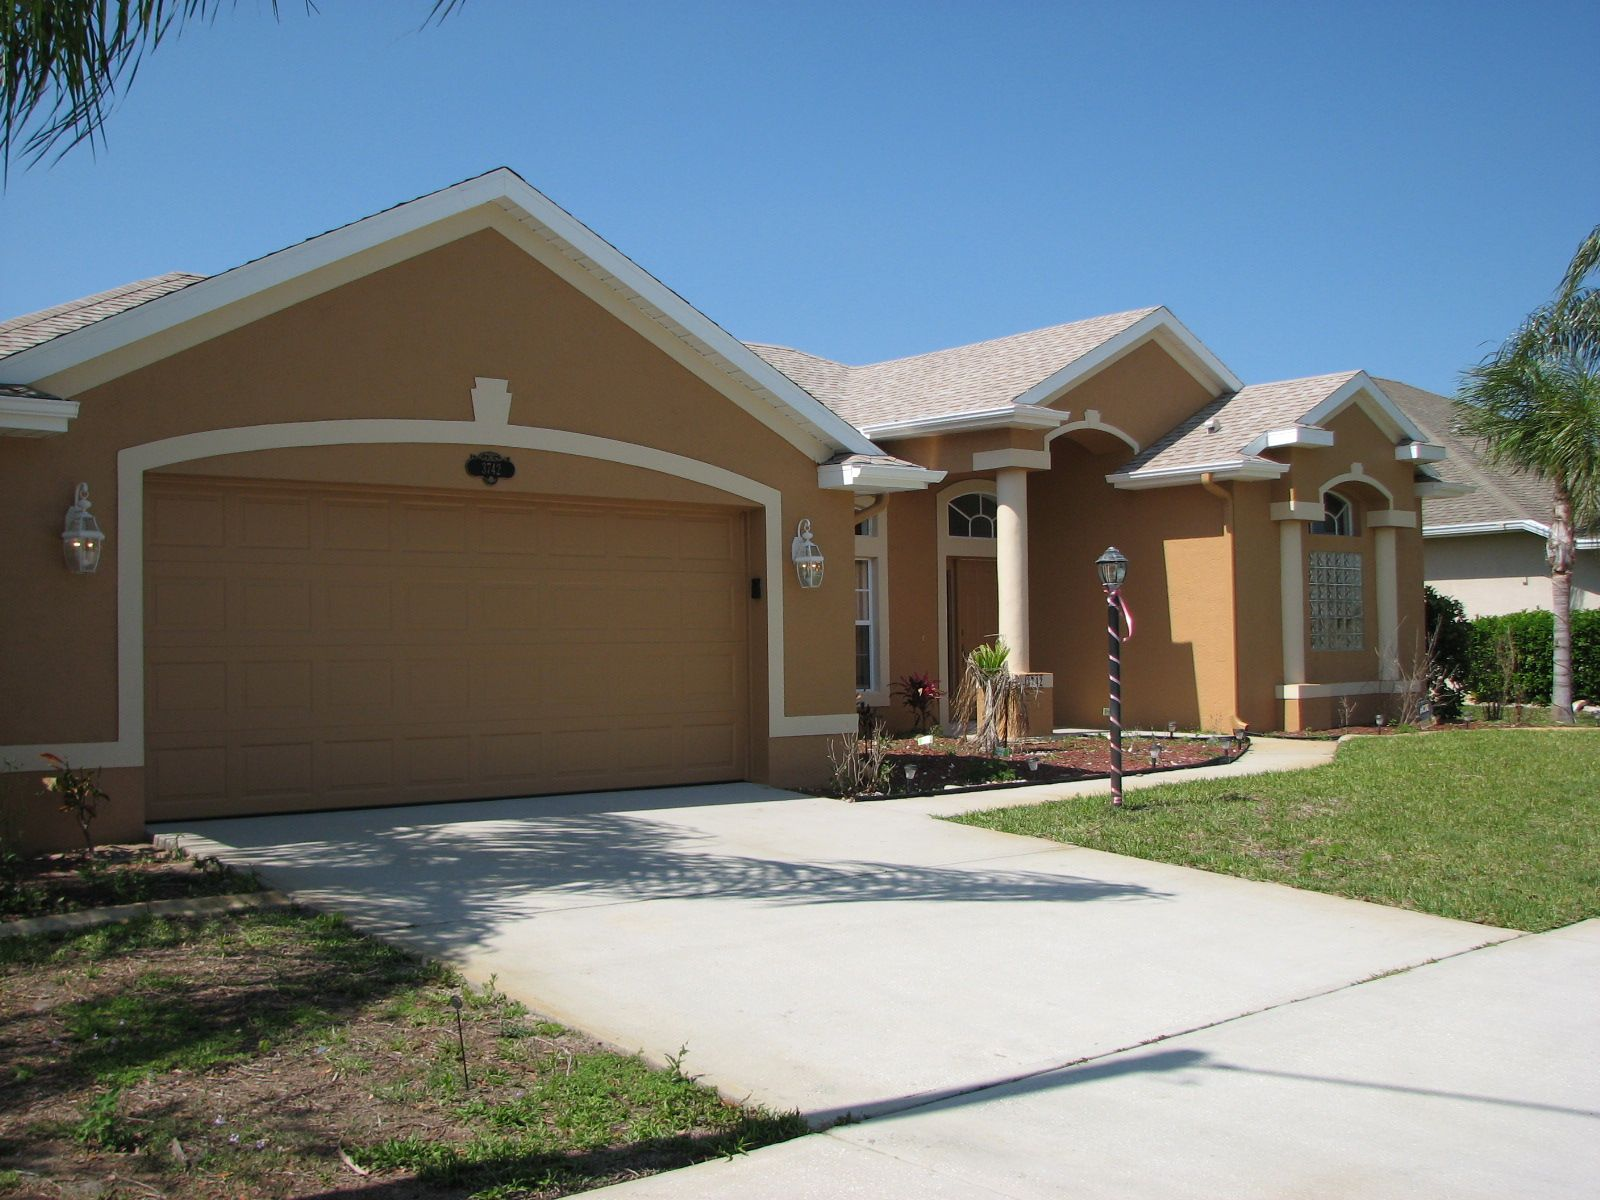 new colors for stucco homes exterior painting melbourne florida stucco cracksdingy soffitts